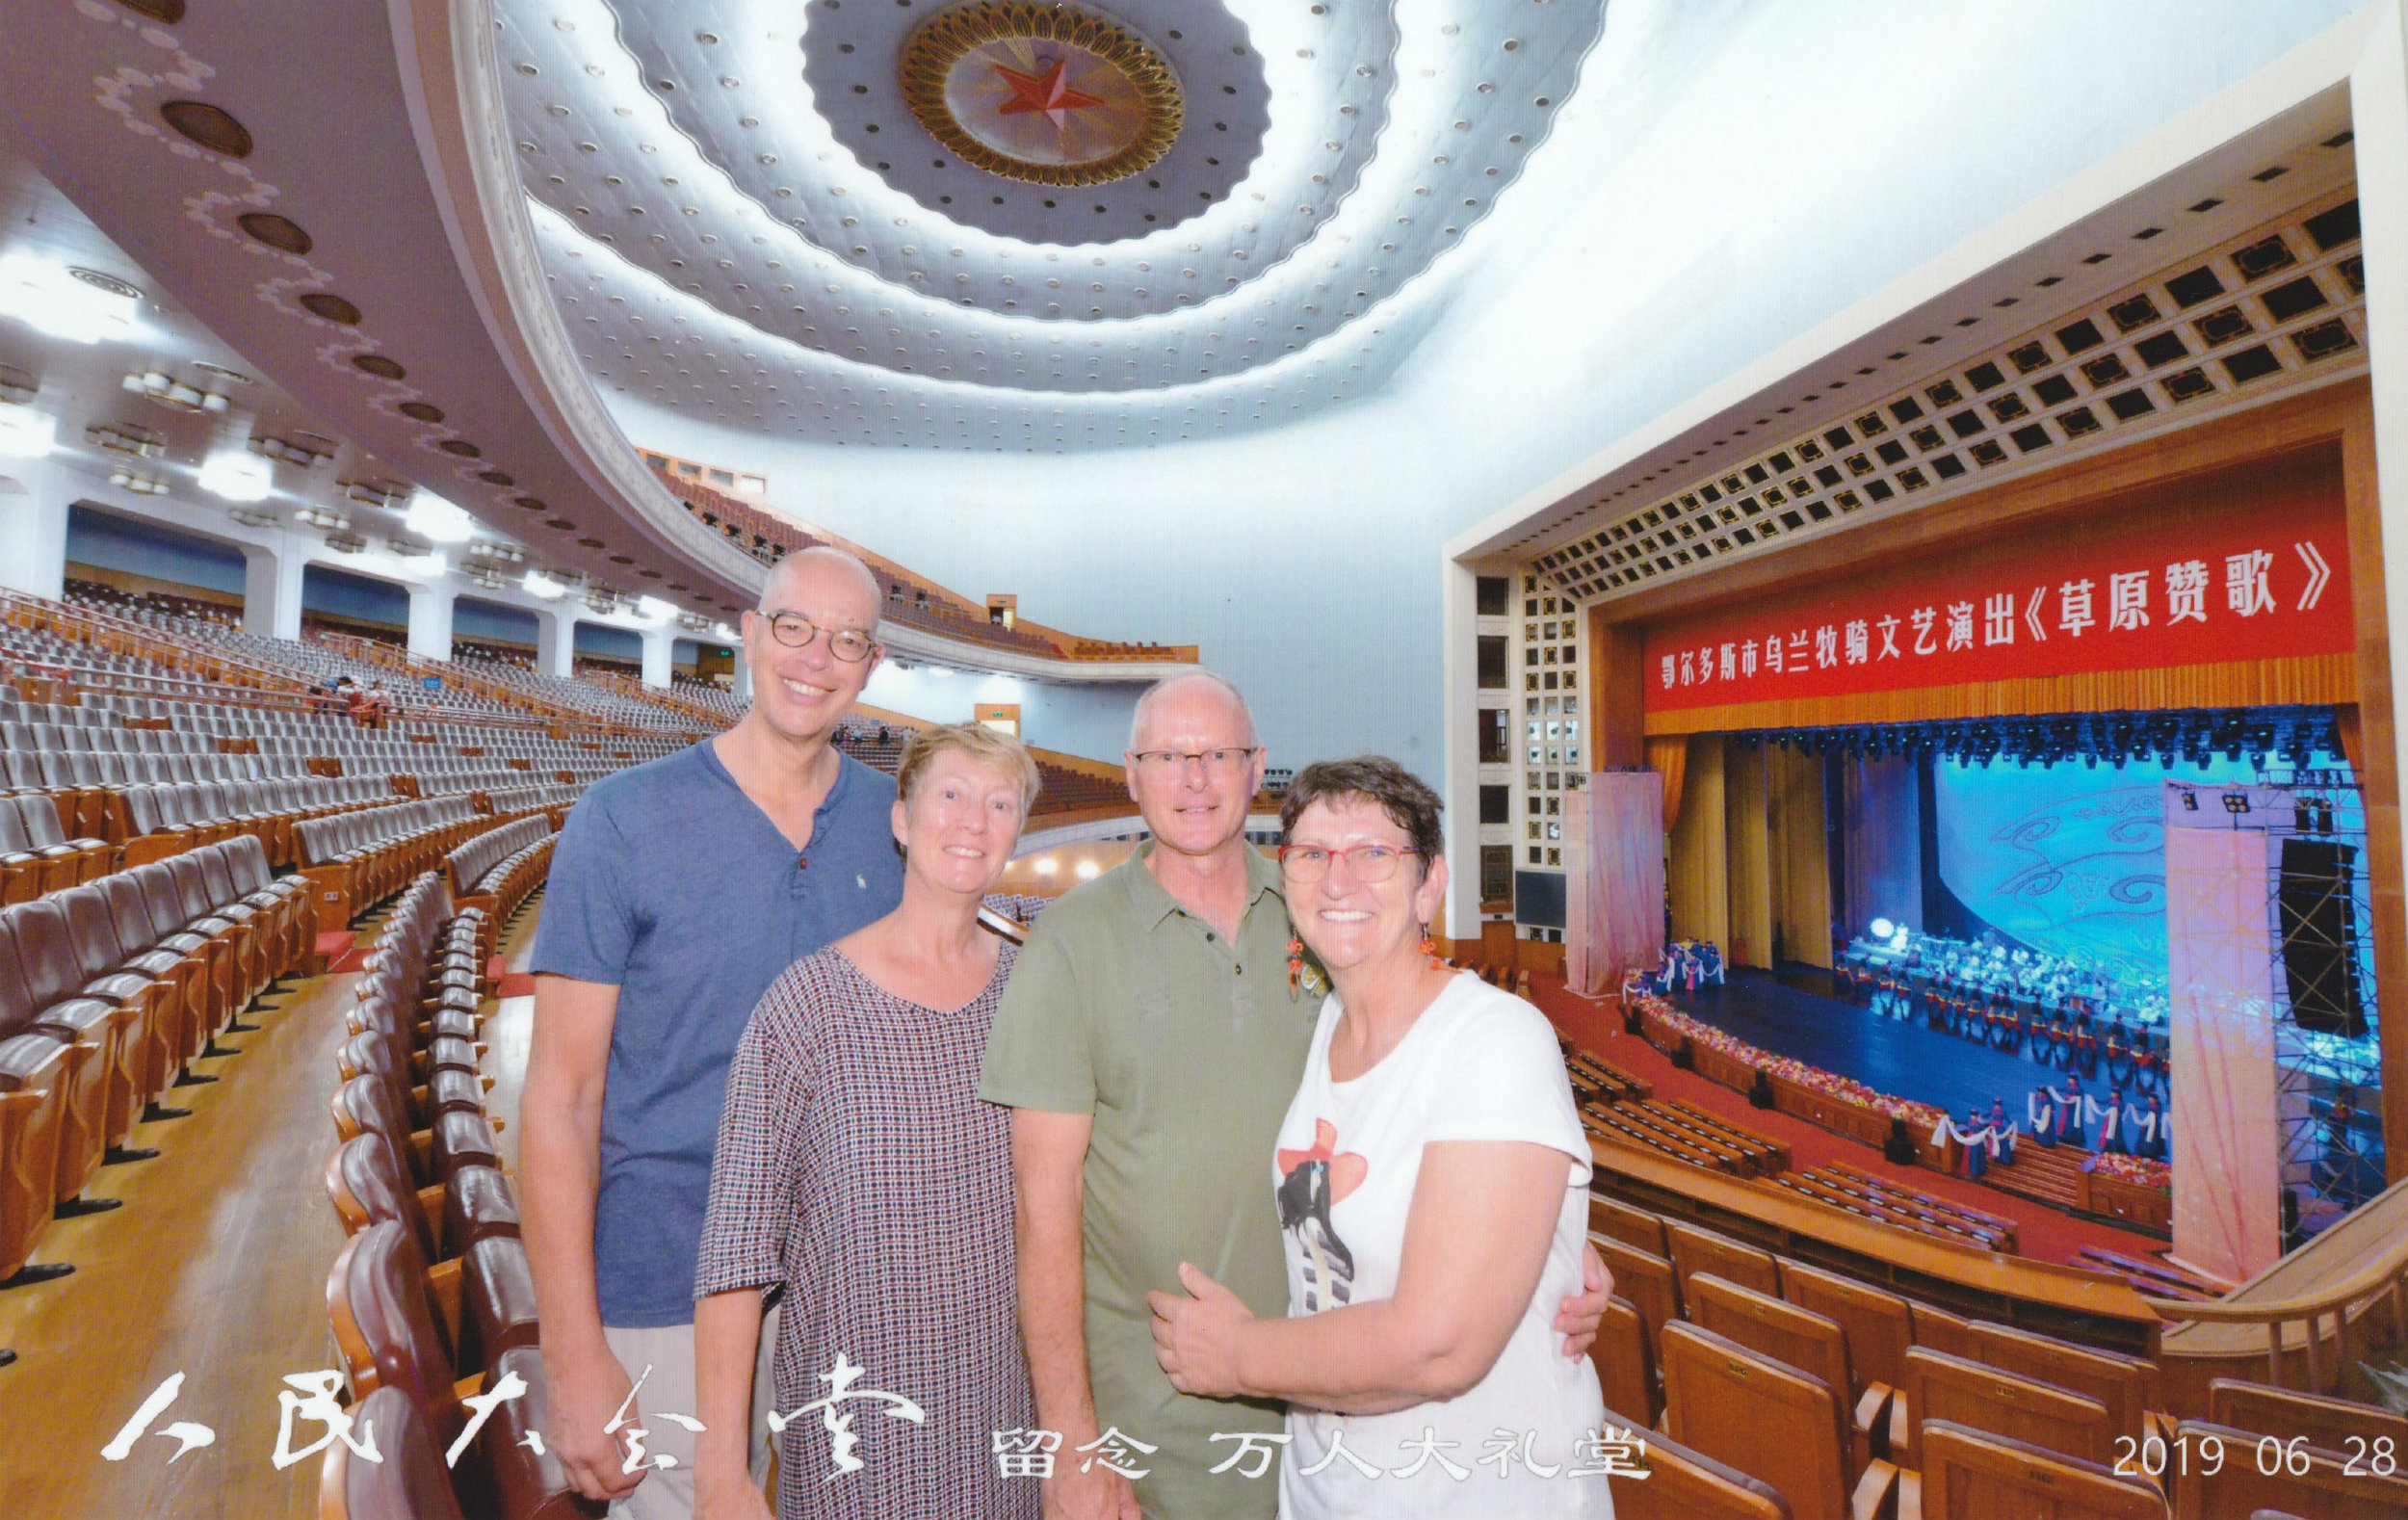 Berry, Pamela, Francien, Frank inside the Great Hall of the People main theater hall